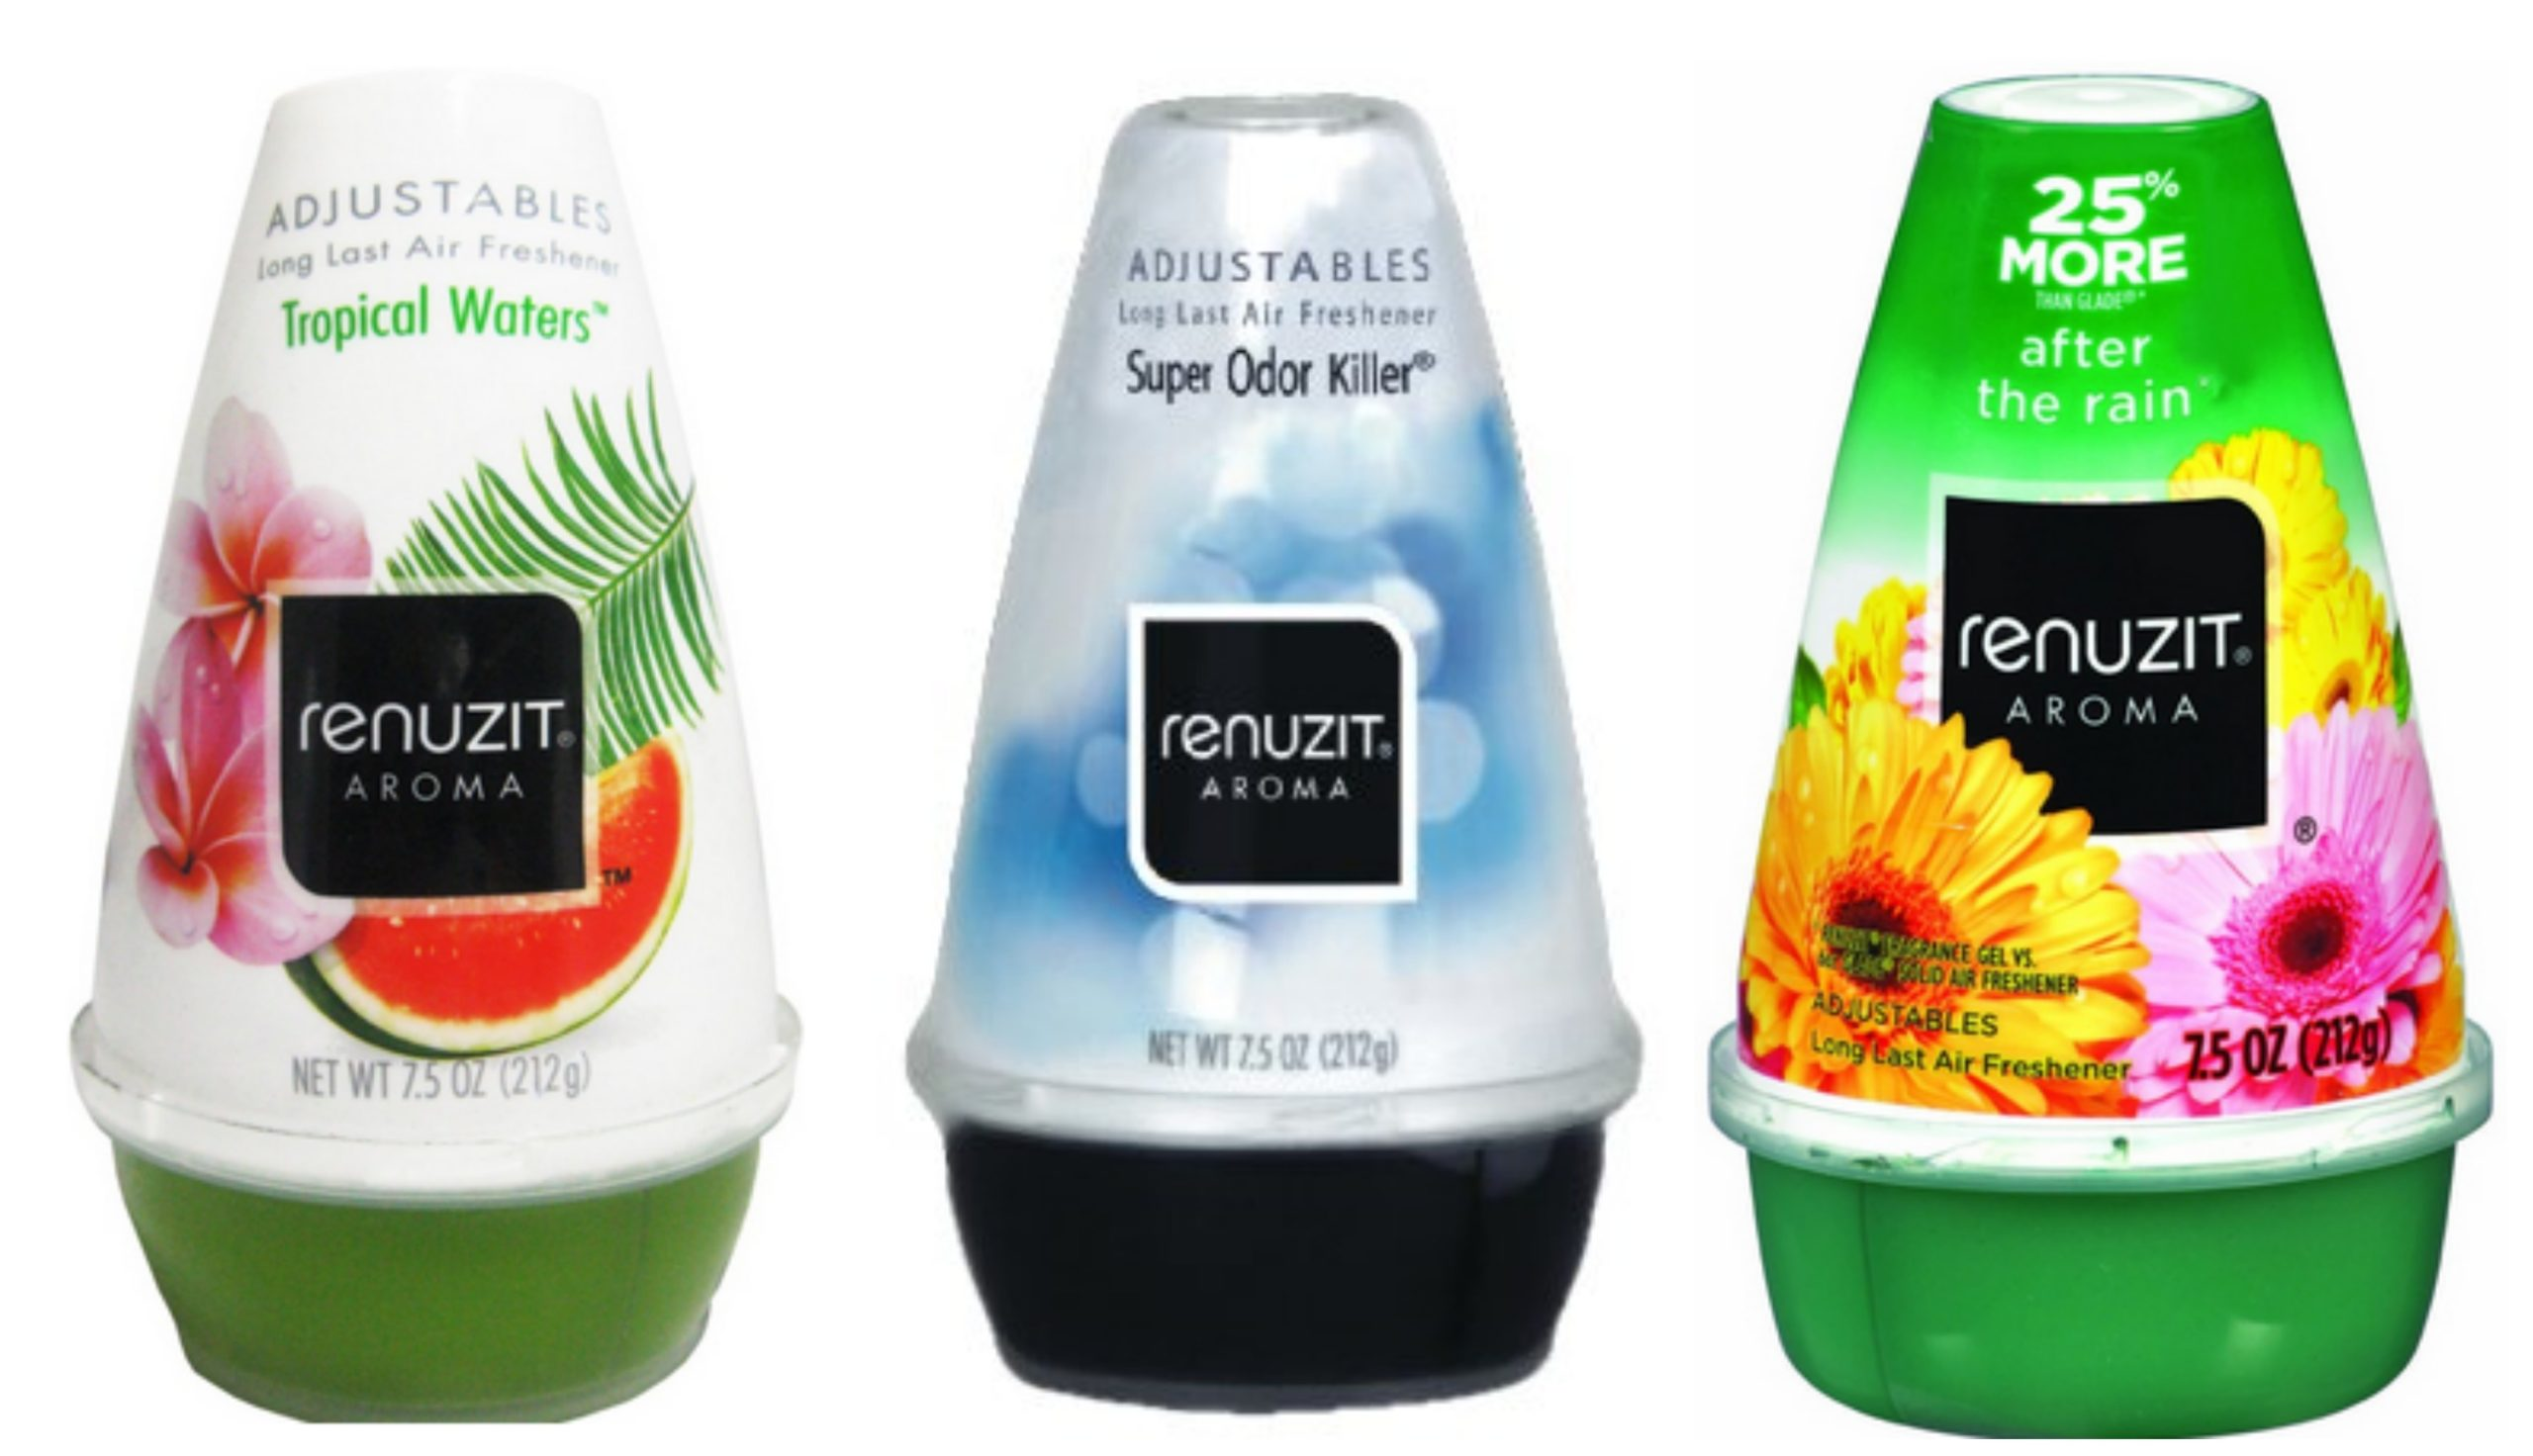 Renuzit Air Freshener Only $0.52 At Walgreens With New Coupon